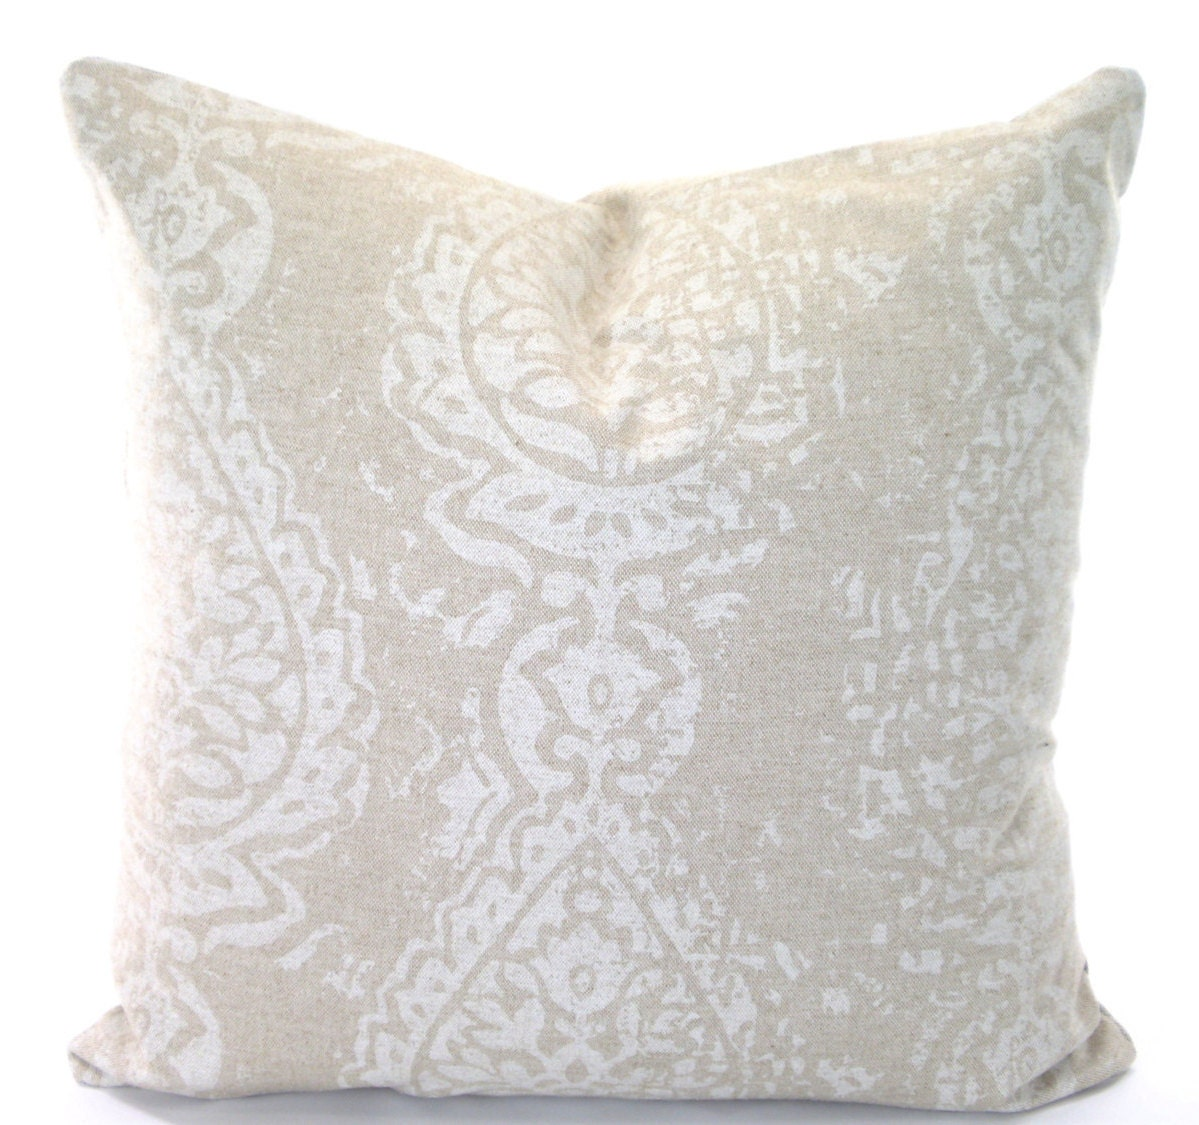 Throw Pillows Tan : Tan Off White Decorative Throw Pillow by PillowCushionCovers